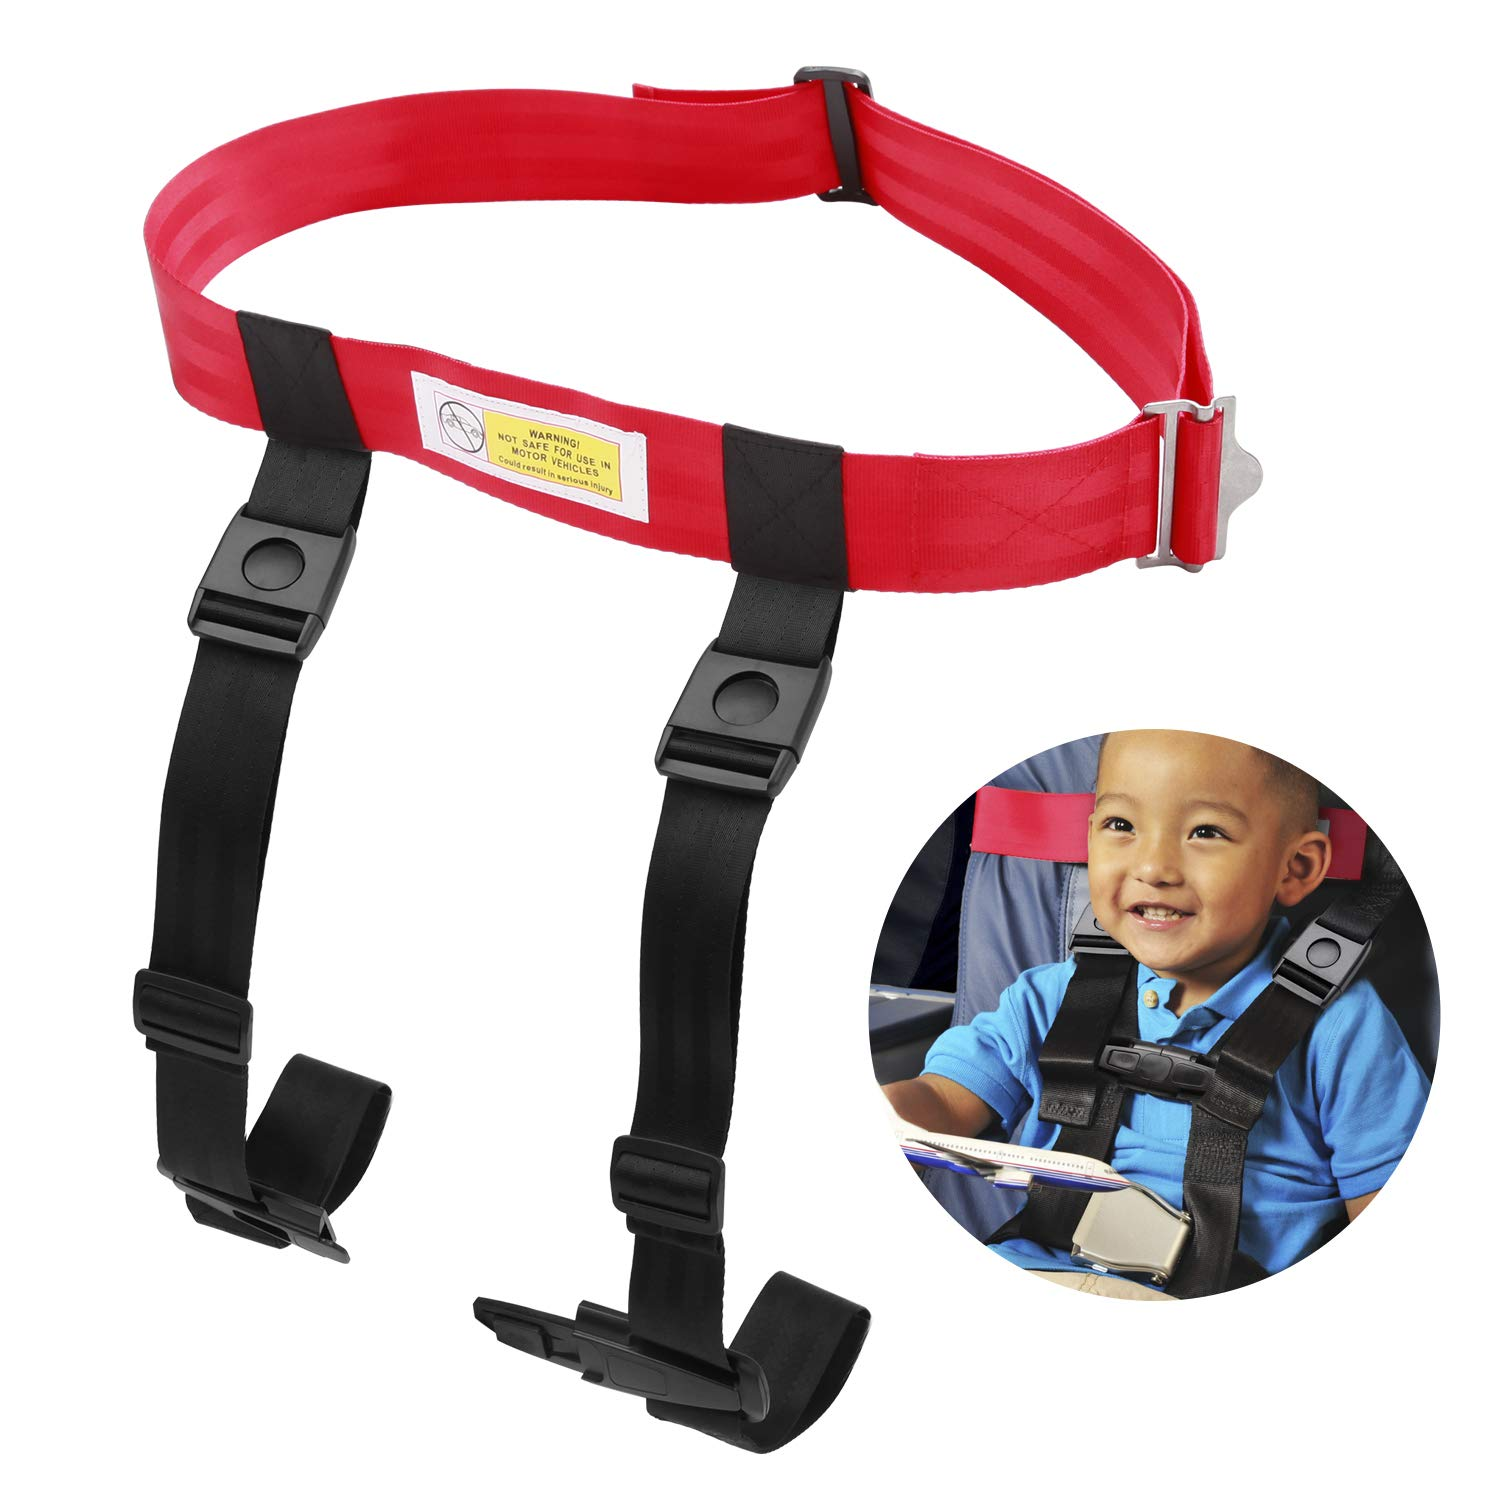 Child Airplane Safety Travel Harness, Clip Strap Safety Airplane Child Restraint System for Baby,Toddlers & Kids - Airplane Travel Accessories for Aviation Travel Use by MASCARRY (Image #1)